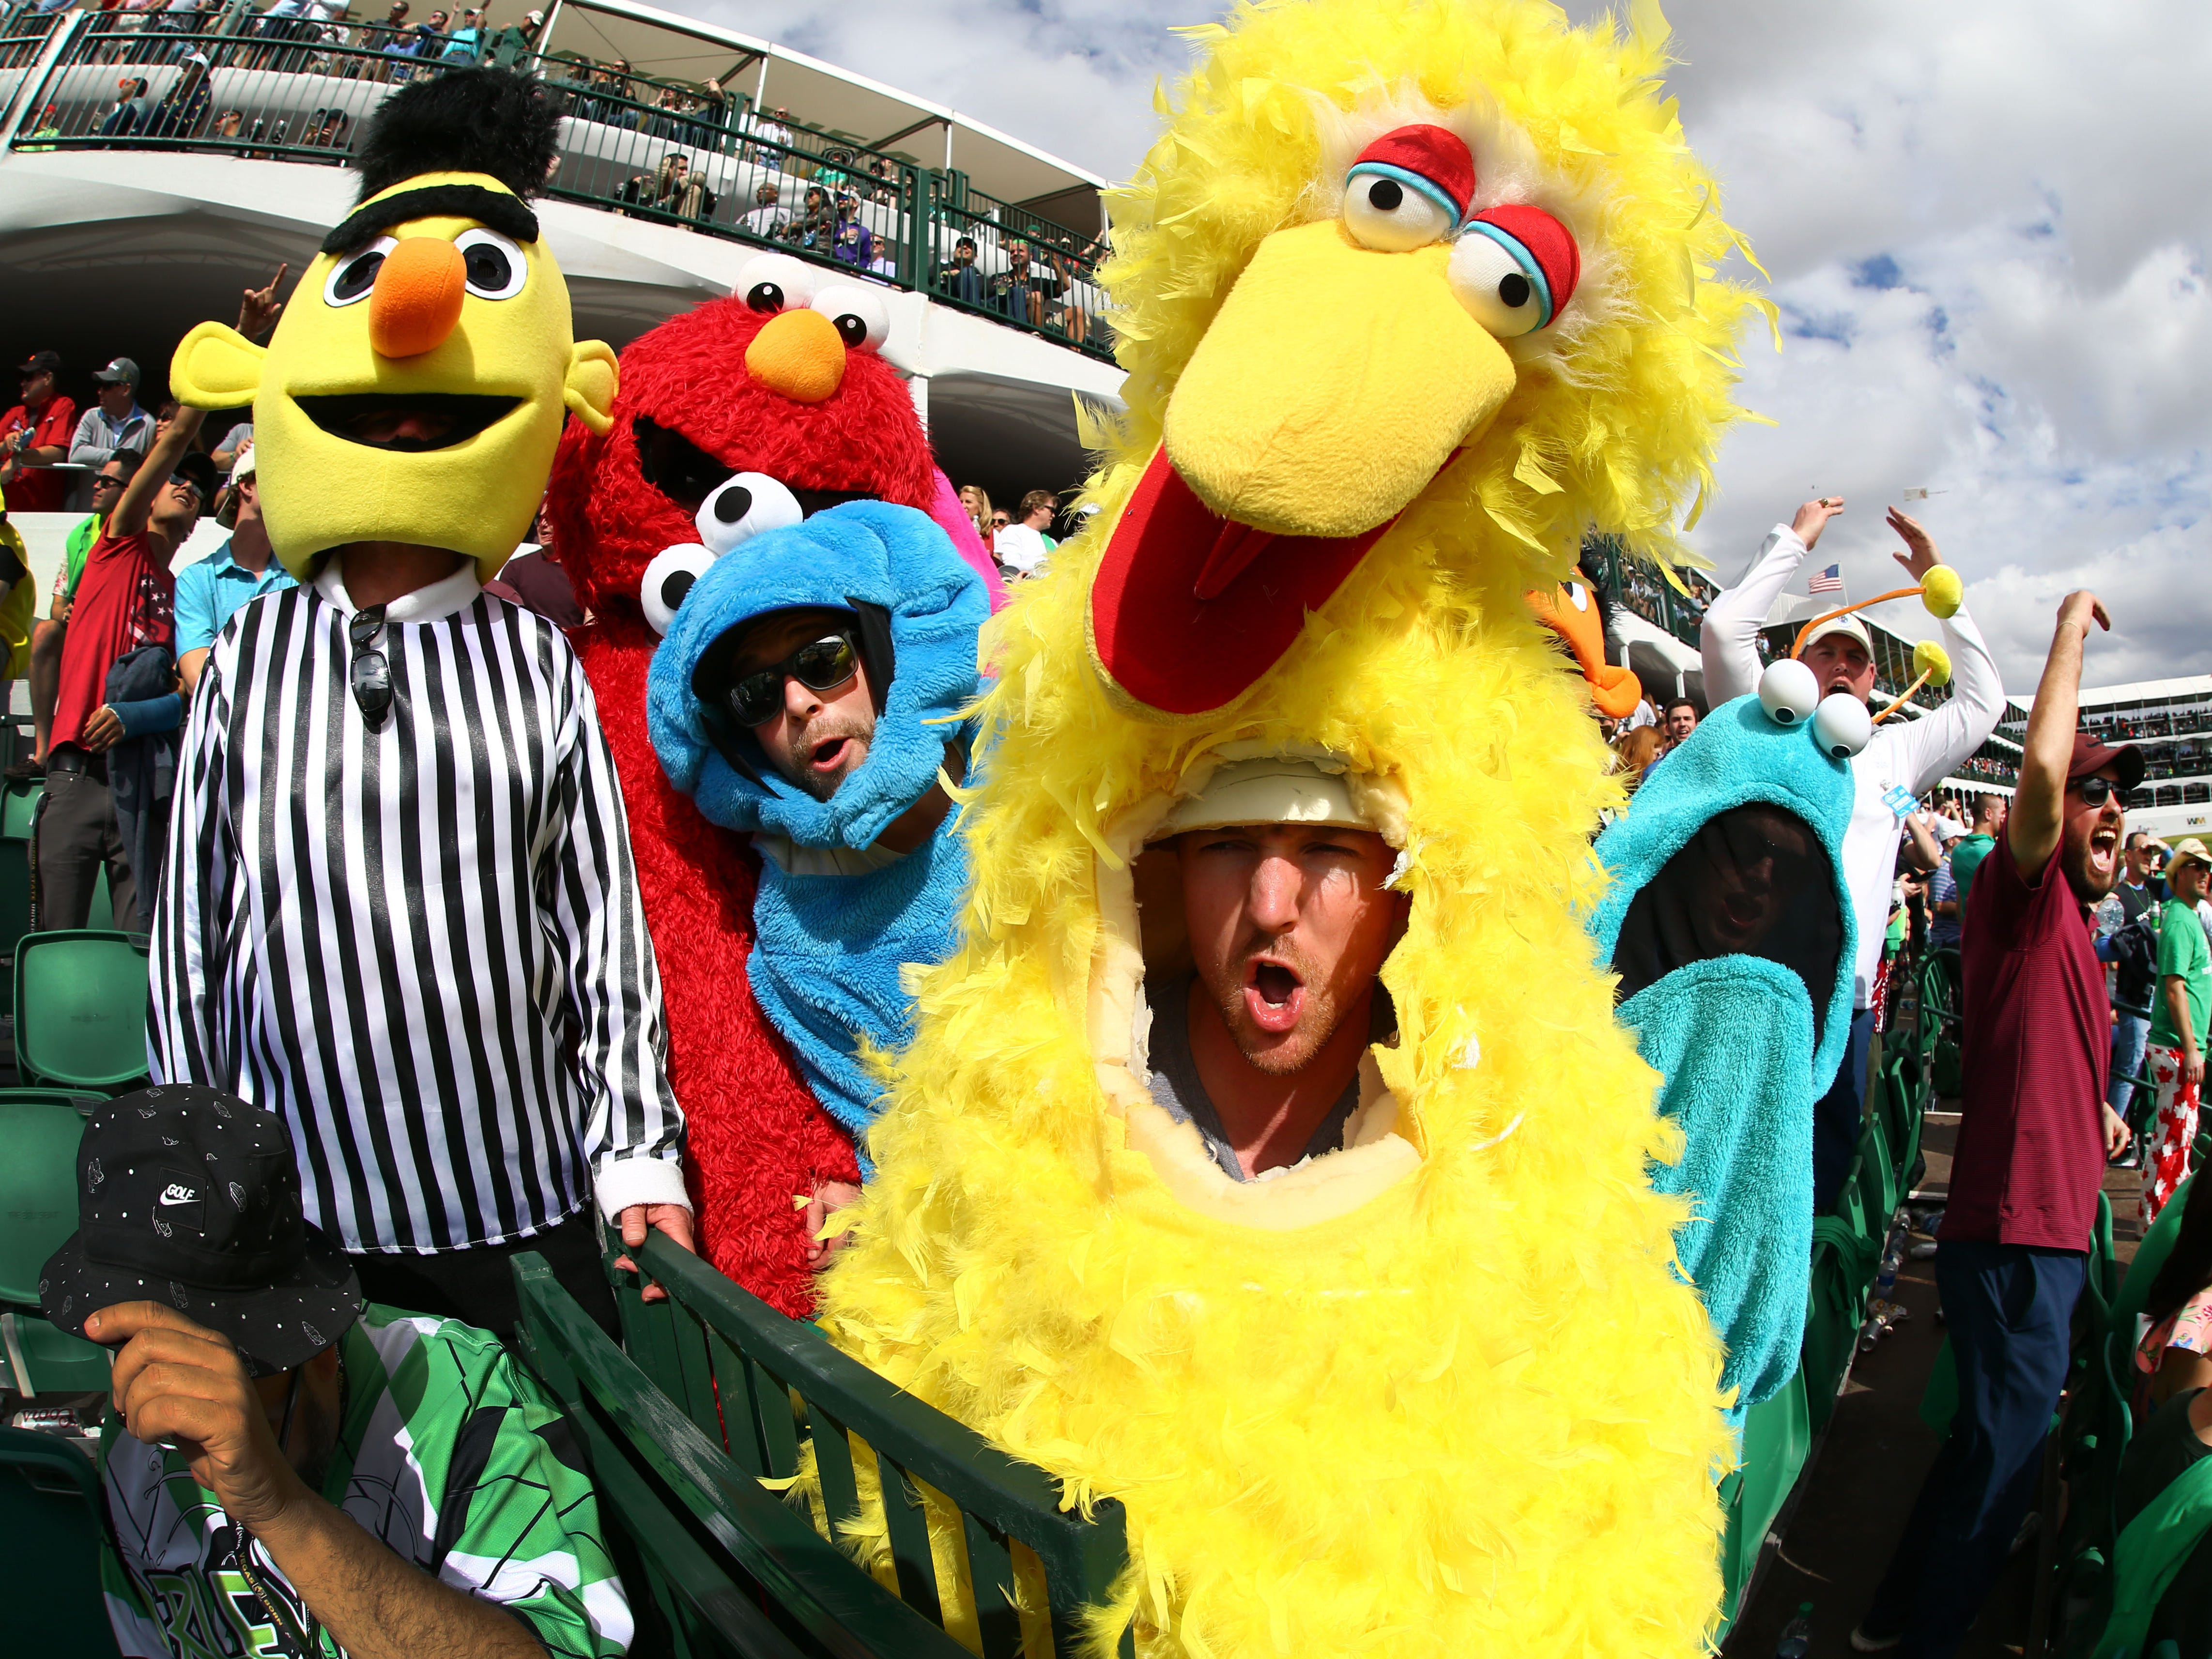 Jesse Hale from Canada wearing Big Bird on the 16th hole with his friends dressed in Sesame Street muppets costomes during third round action on Feb. 2 during the Waste Management Phoenix Open at the TPC Scottsdale Stadium Course.